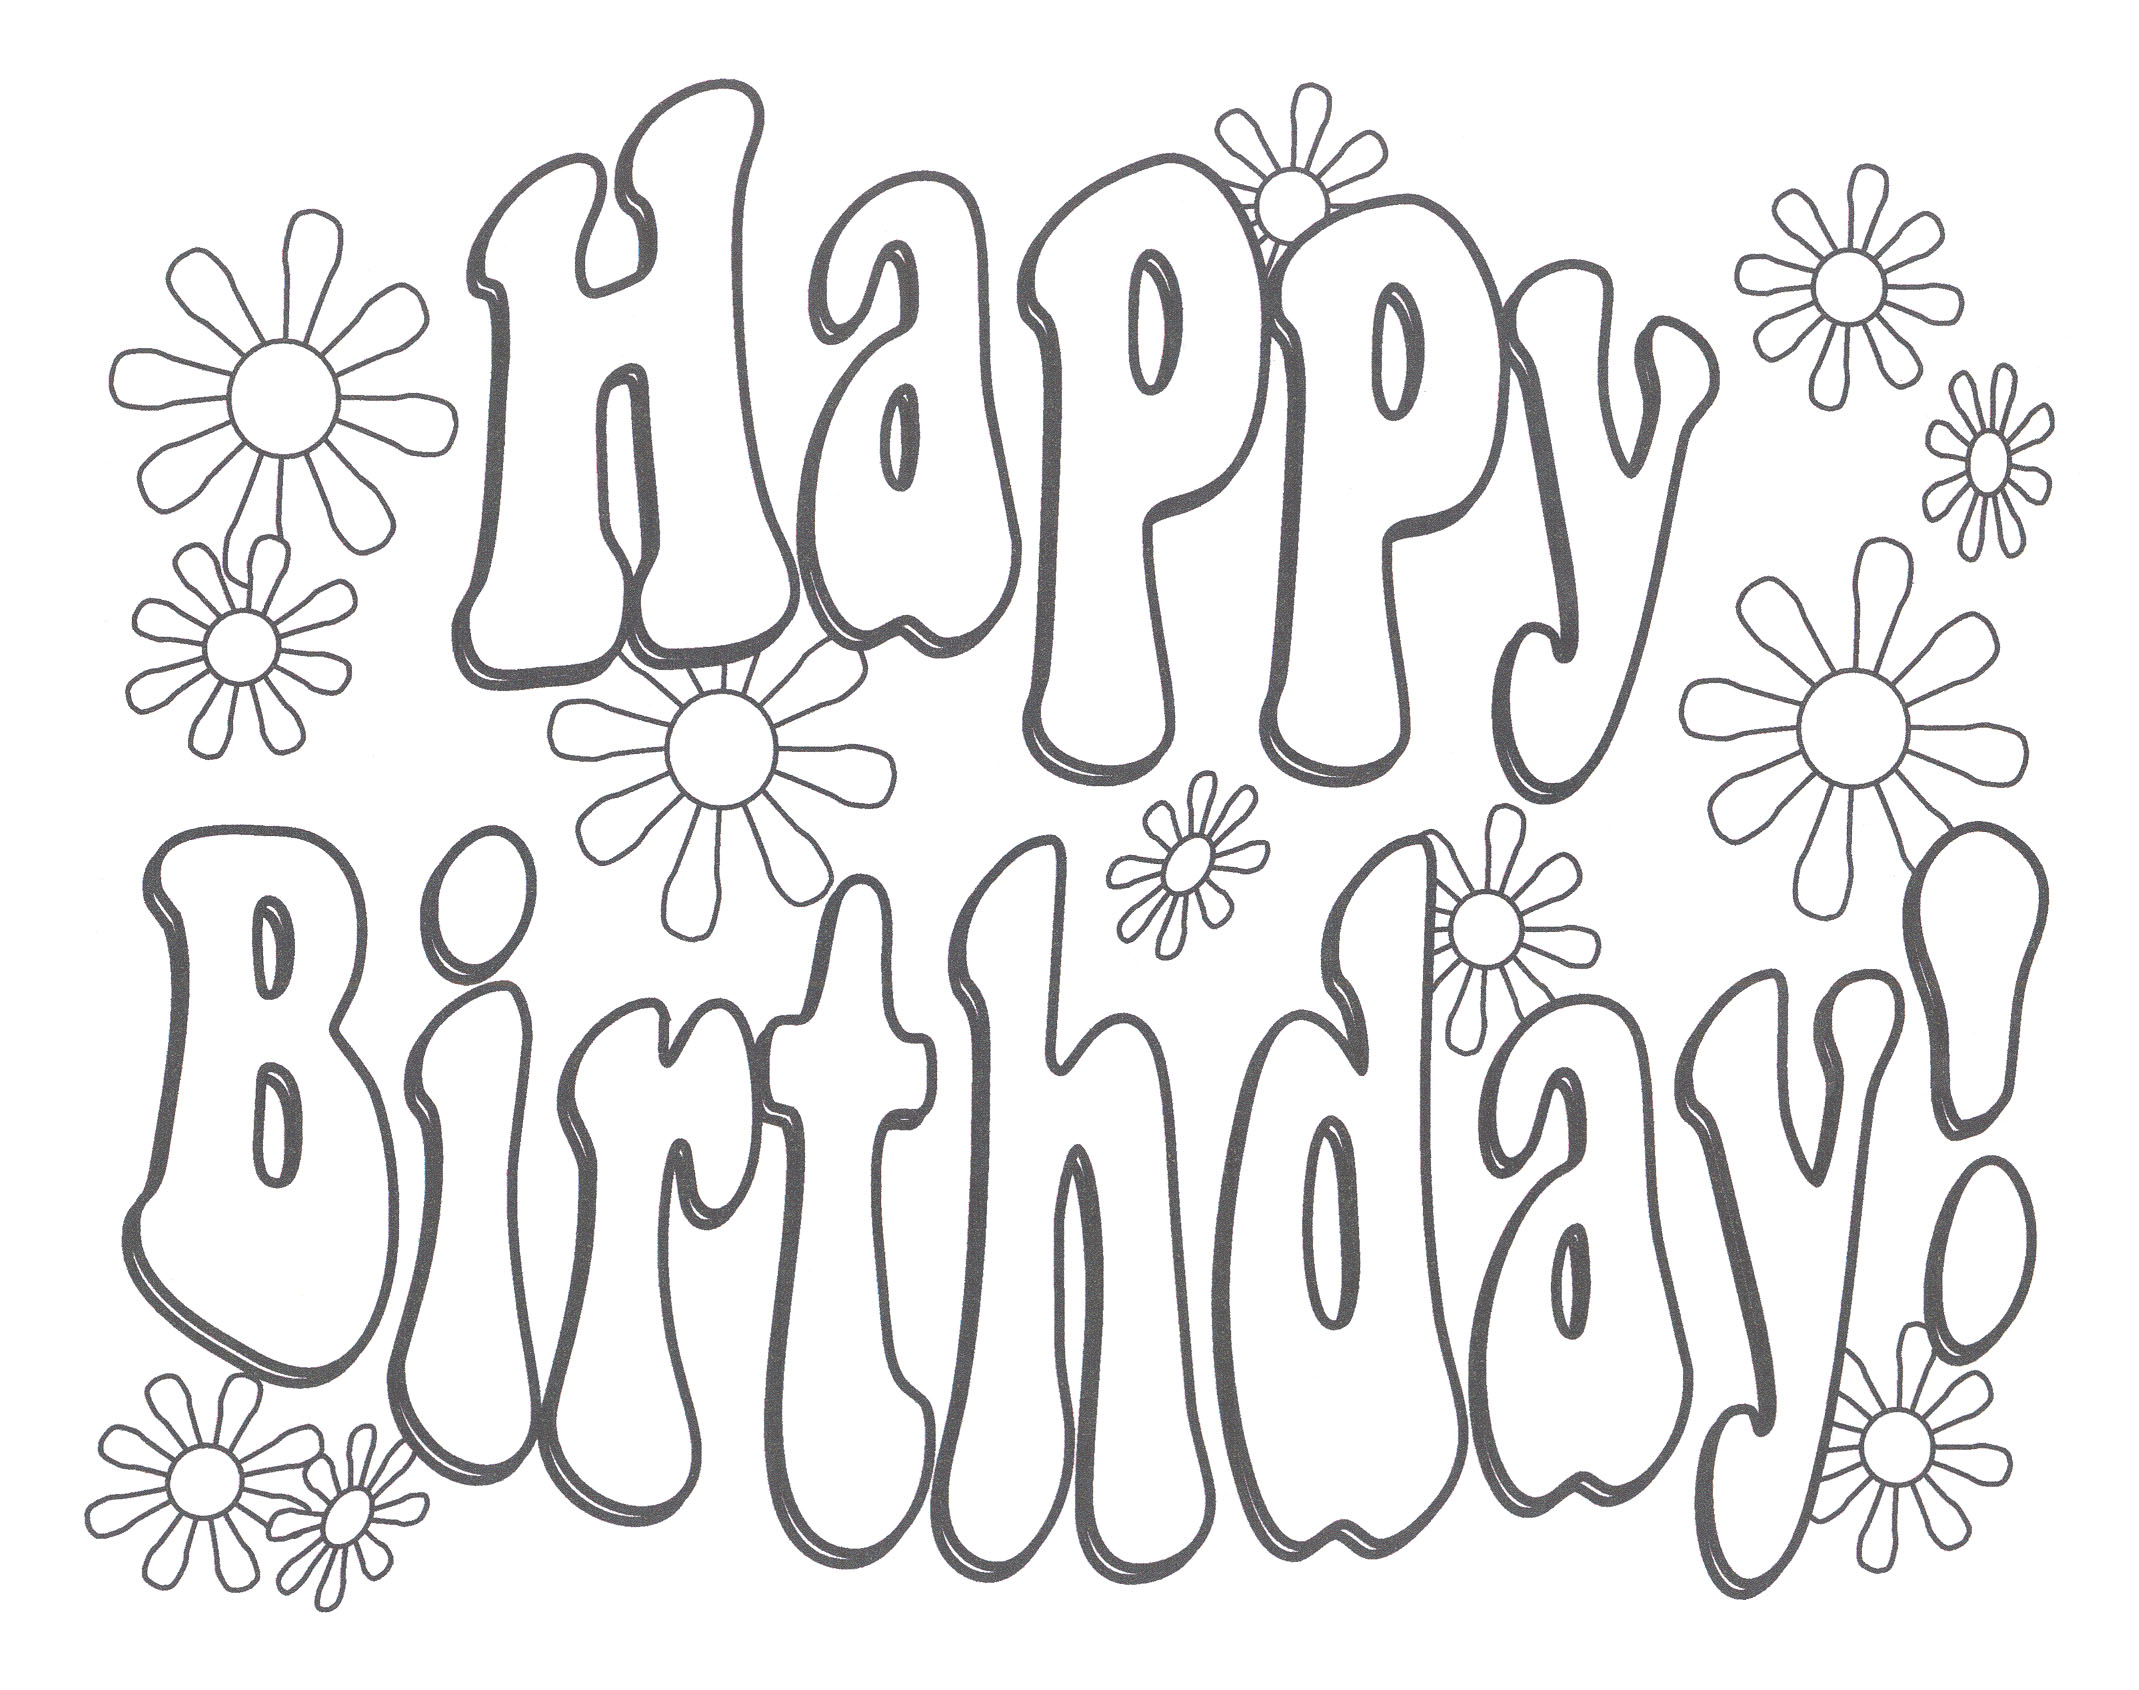 happy birthday coloring pages - Birthday Coloring Pages Girls